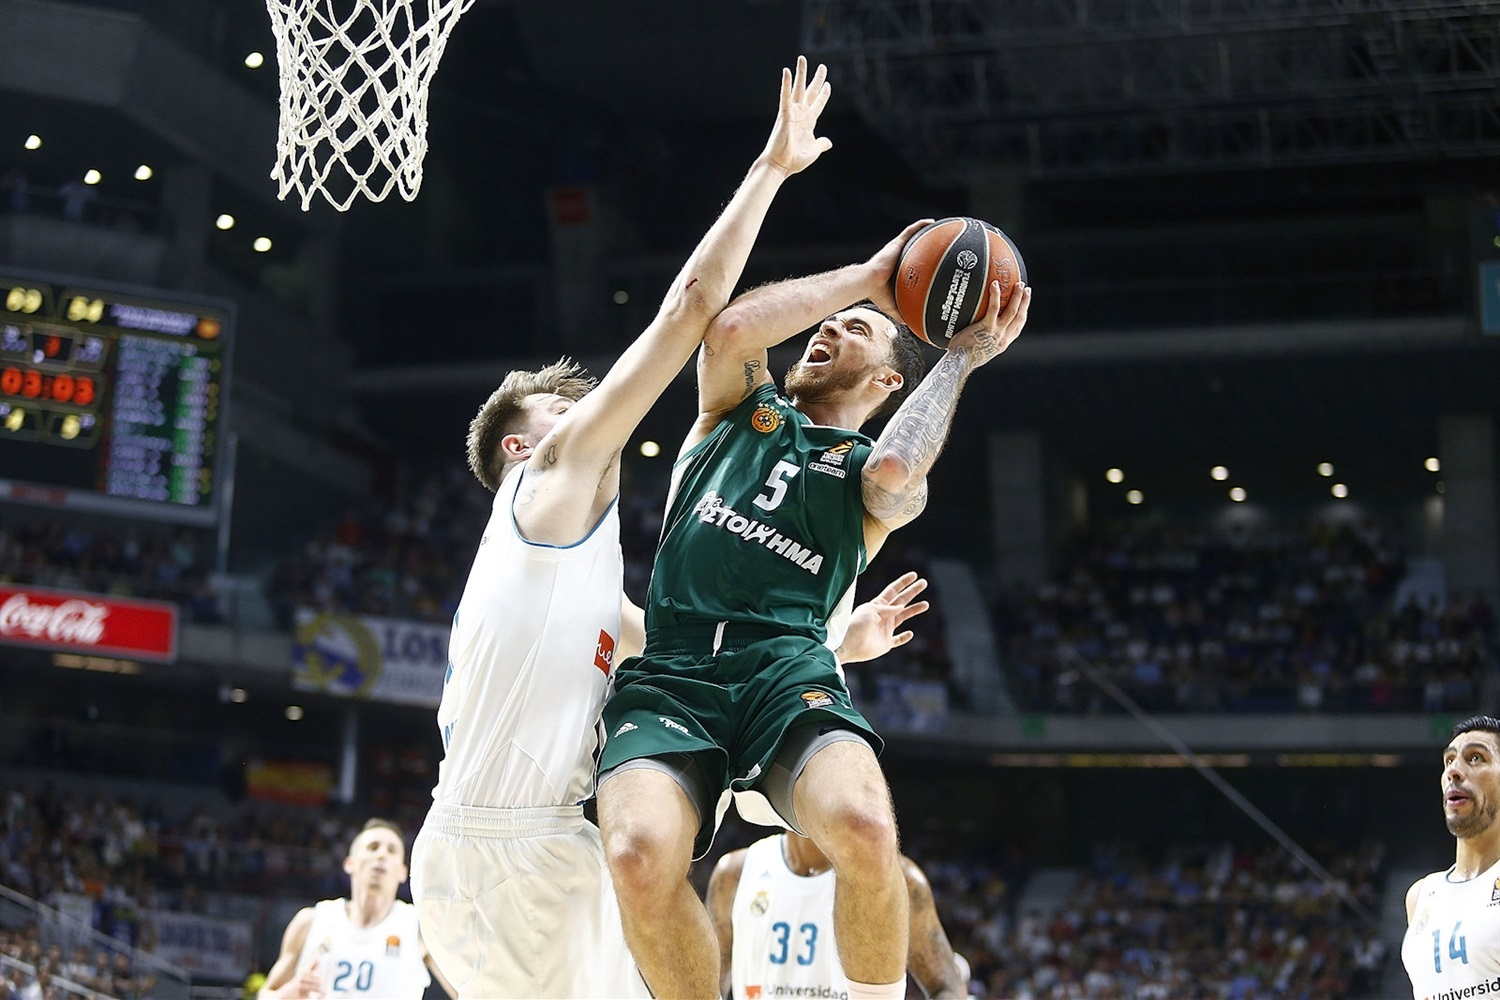 Mike James - Panathinaikos Superfoods Athens - EB17_8p8o3lbmnqe5f8bl